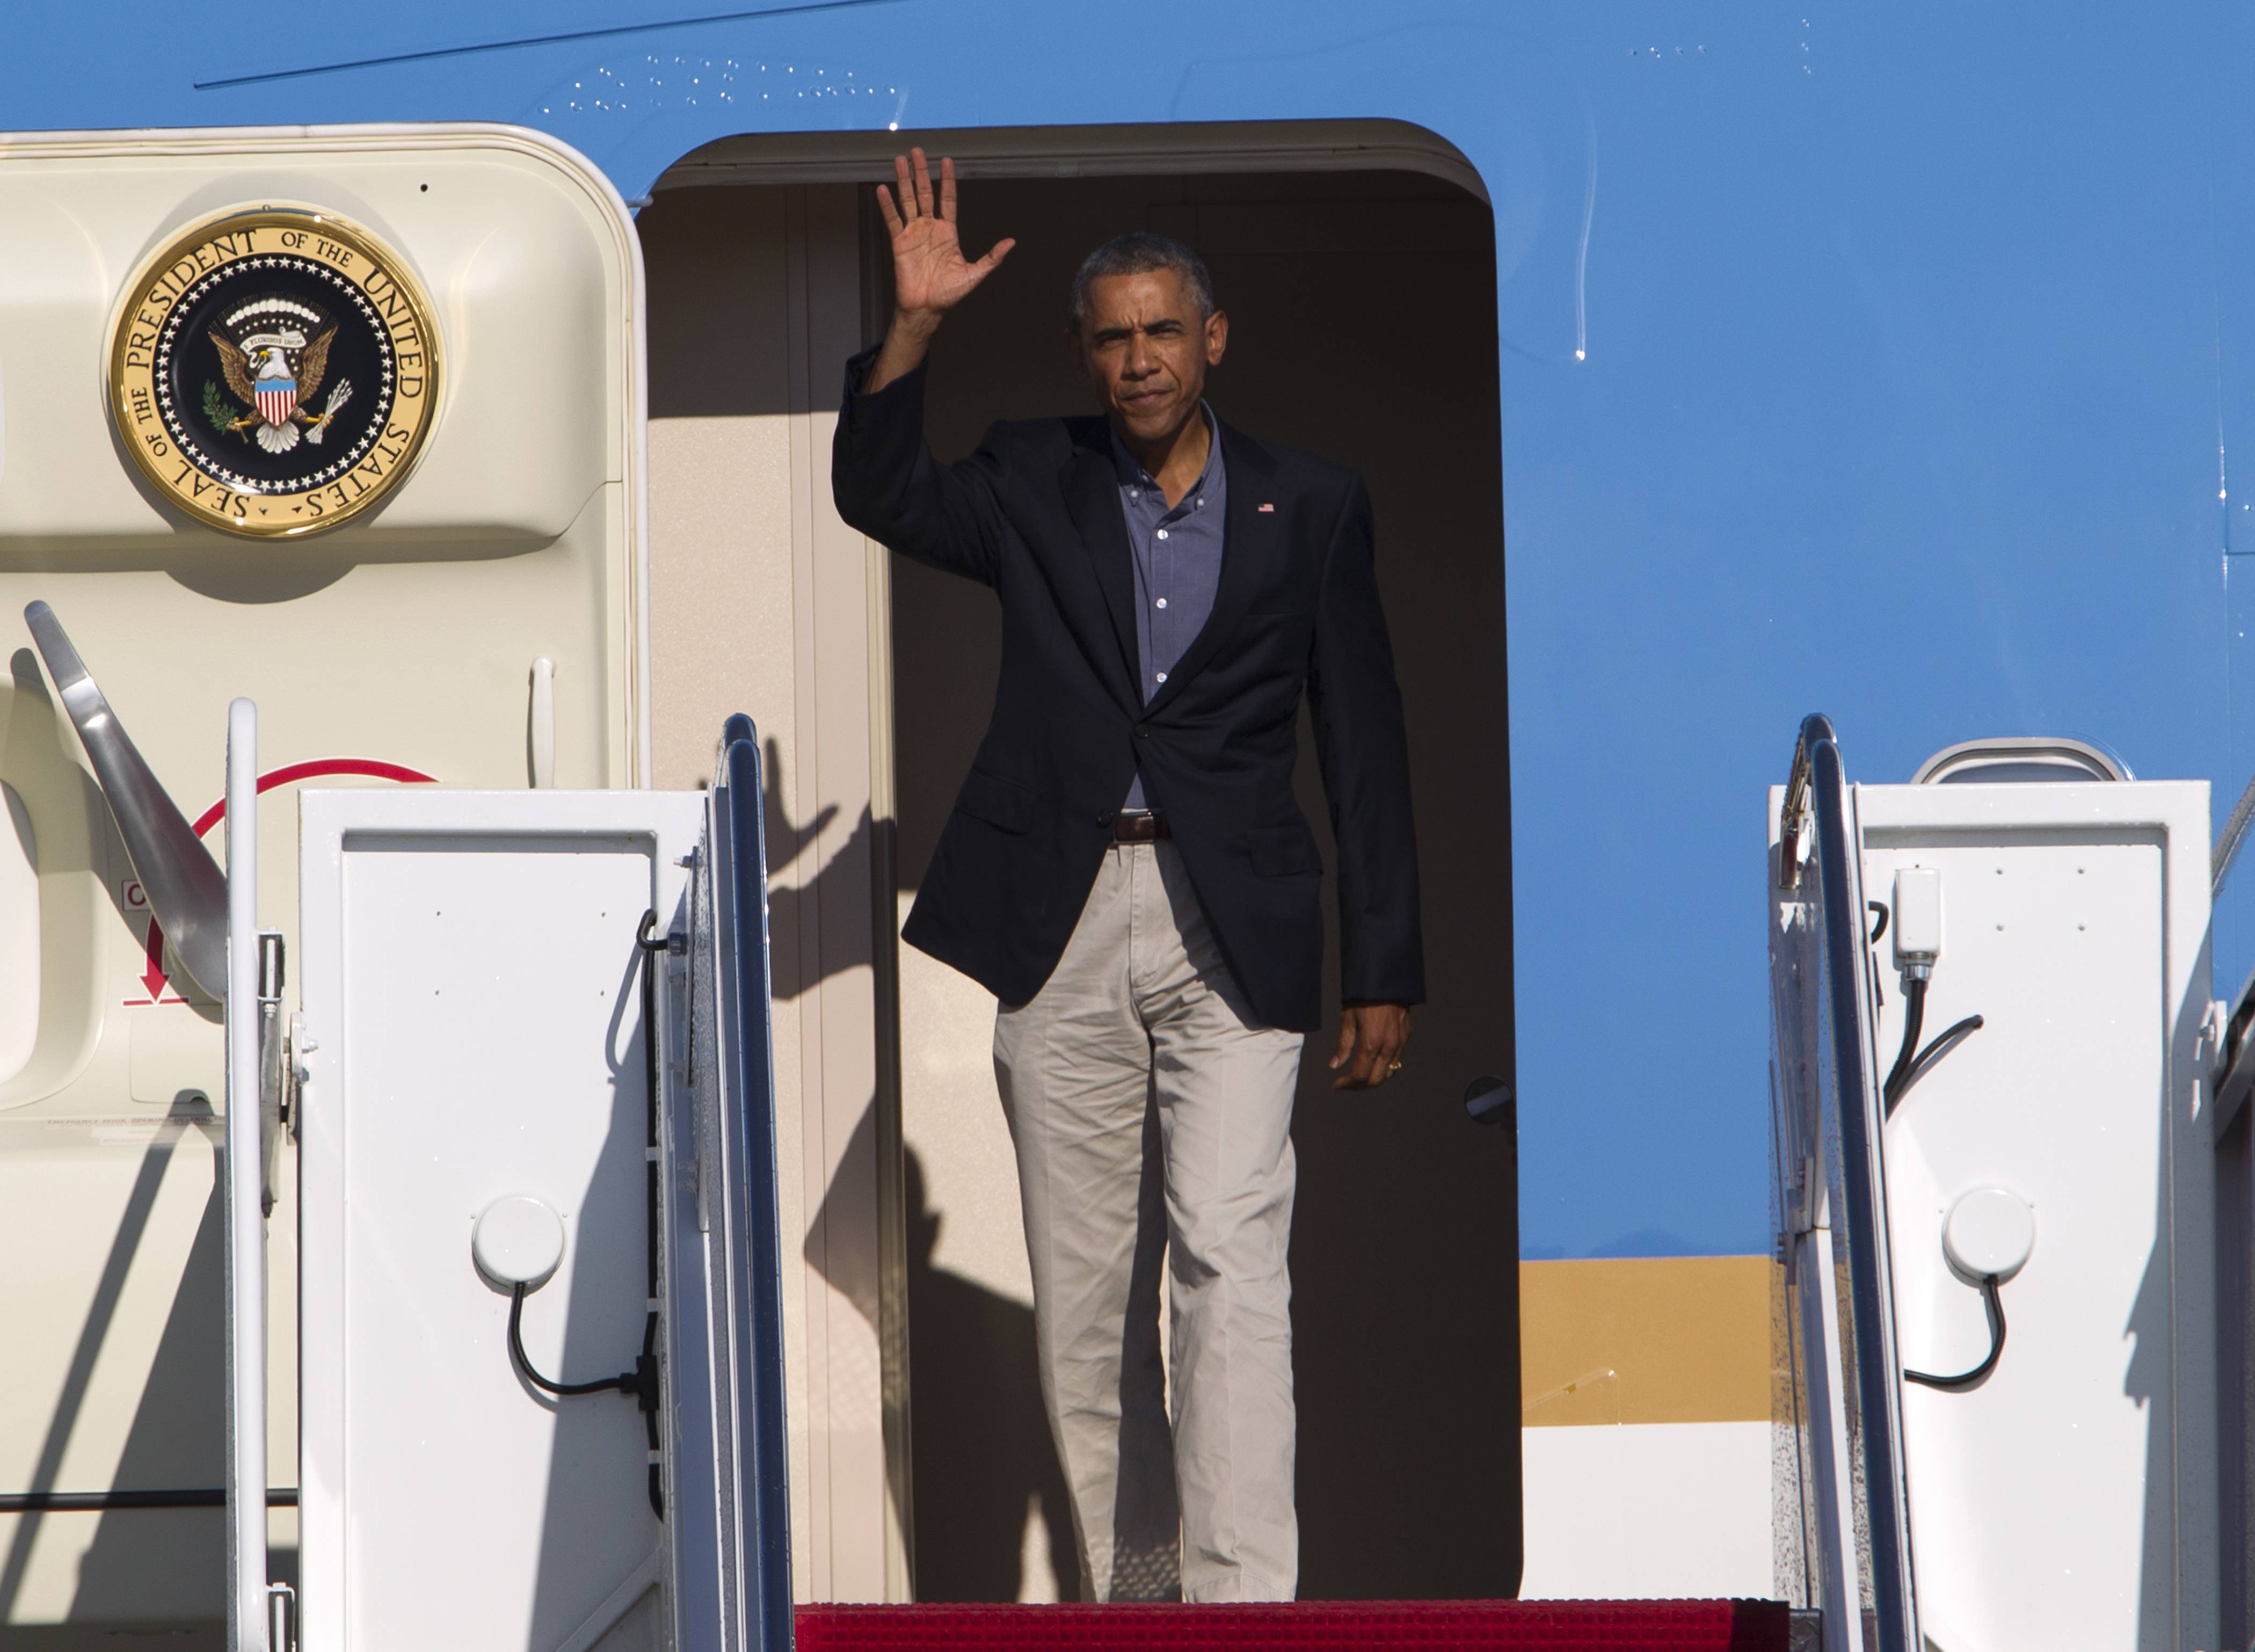 President Barack Obama departs Washington on Tuesday to visit Tallinn and Estonia, on his way to this week's North Atlantic Treaty Organization summit in the United Kingdom.